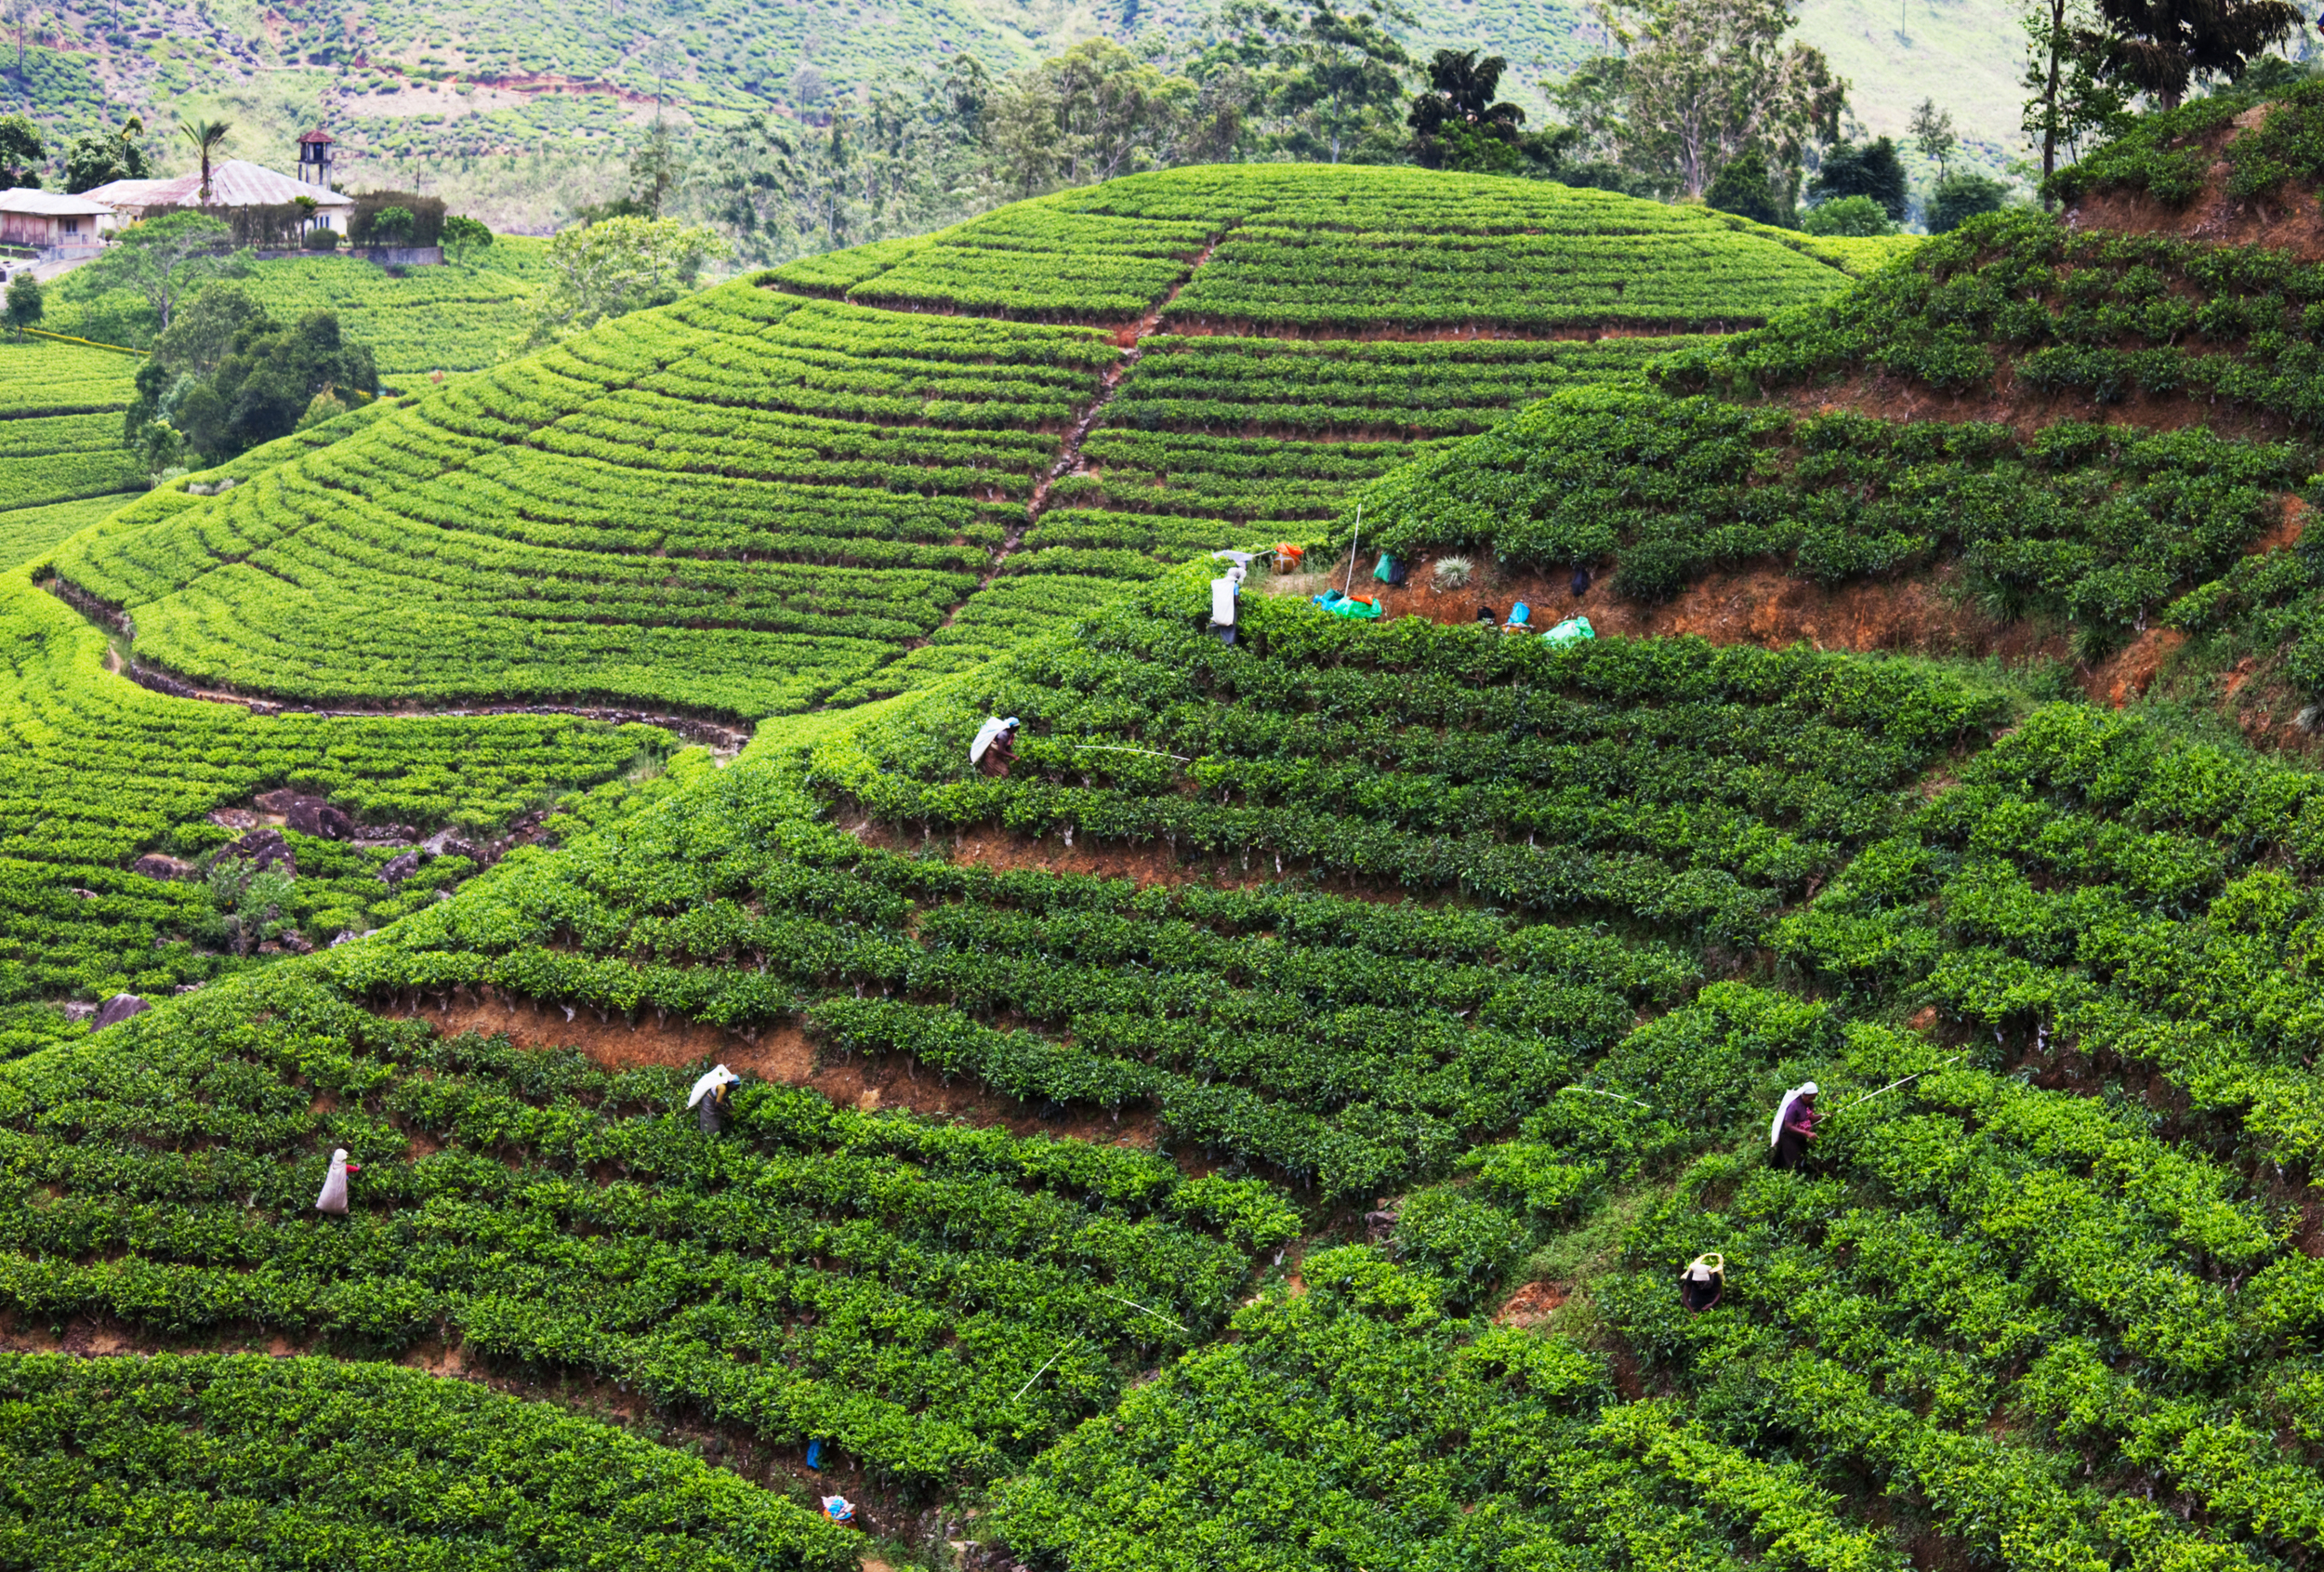 invite-to-paradise-sri-lanka-holiday-honeymoon-tea-plantations-mountains-11.jpg